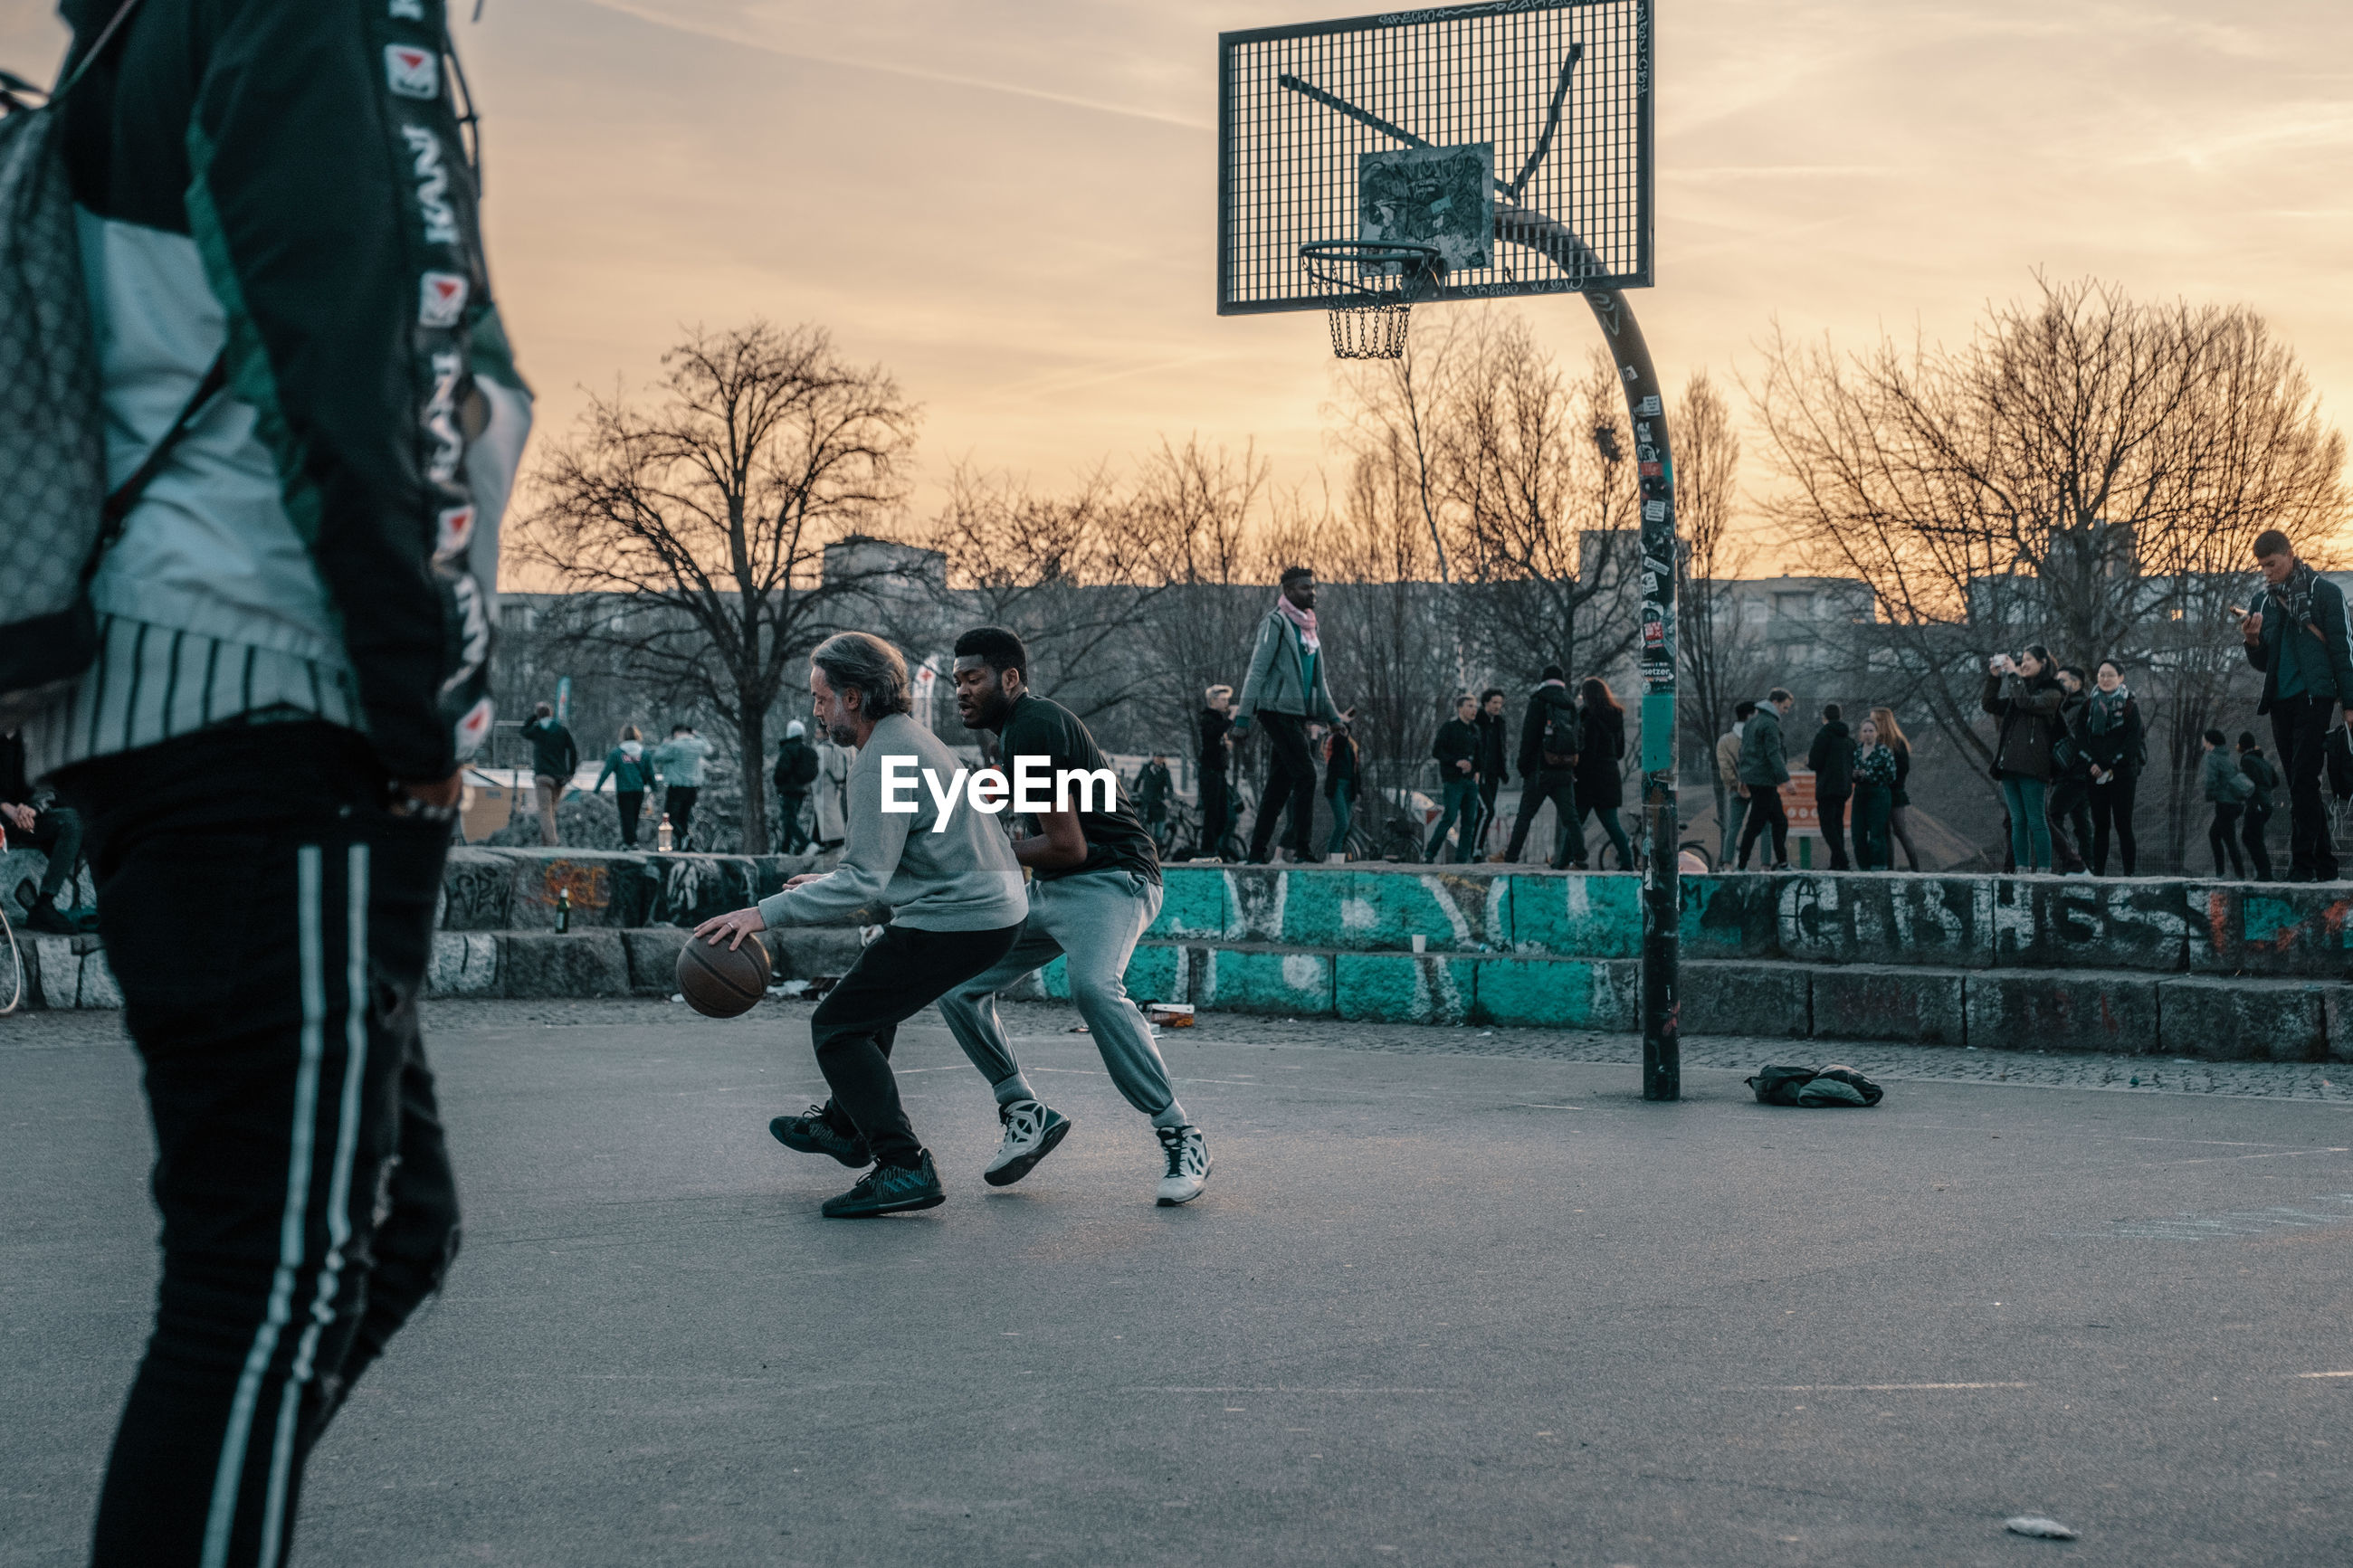 PEOPLE ON BASKETBALL COURT IN CITY